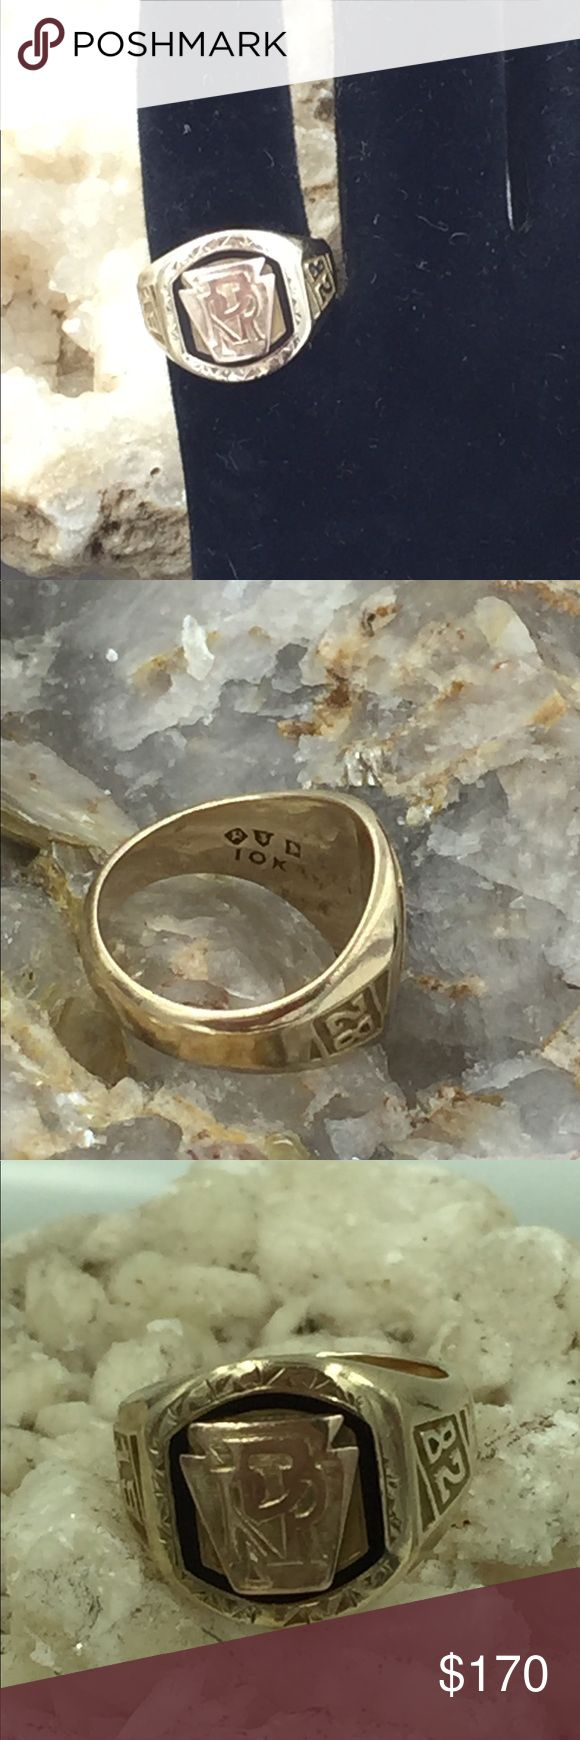 10K Yellow & Rose Gold 1982RPR Class Ring 3.25 Up for sale is a beautiful 1982 RPR class Ring in solid 10KT yellow and rose gold. The RPR written in front of the ring is rose gold. The black and etched bordering the RPR enhances the design of this wonderful class ring.  Size: 3.25 Stamped: 10K ASP M.A.M  Weight: 5.3g  Please do not hesitate to make a reasonable offer. Thank you for visiting our page. Jewelry Rings